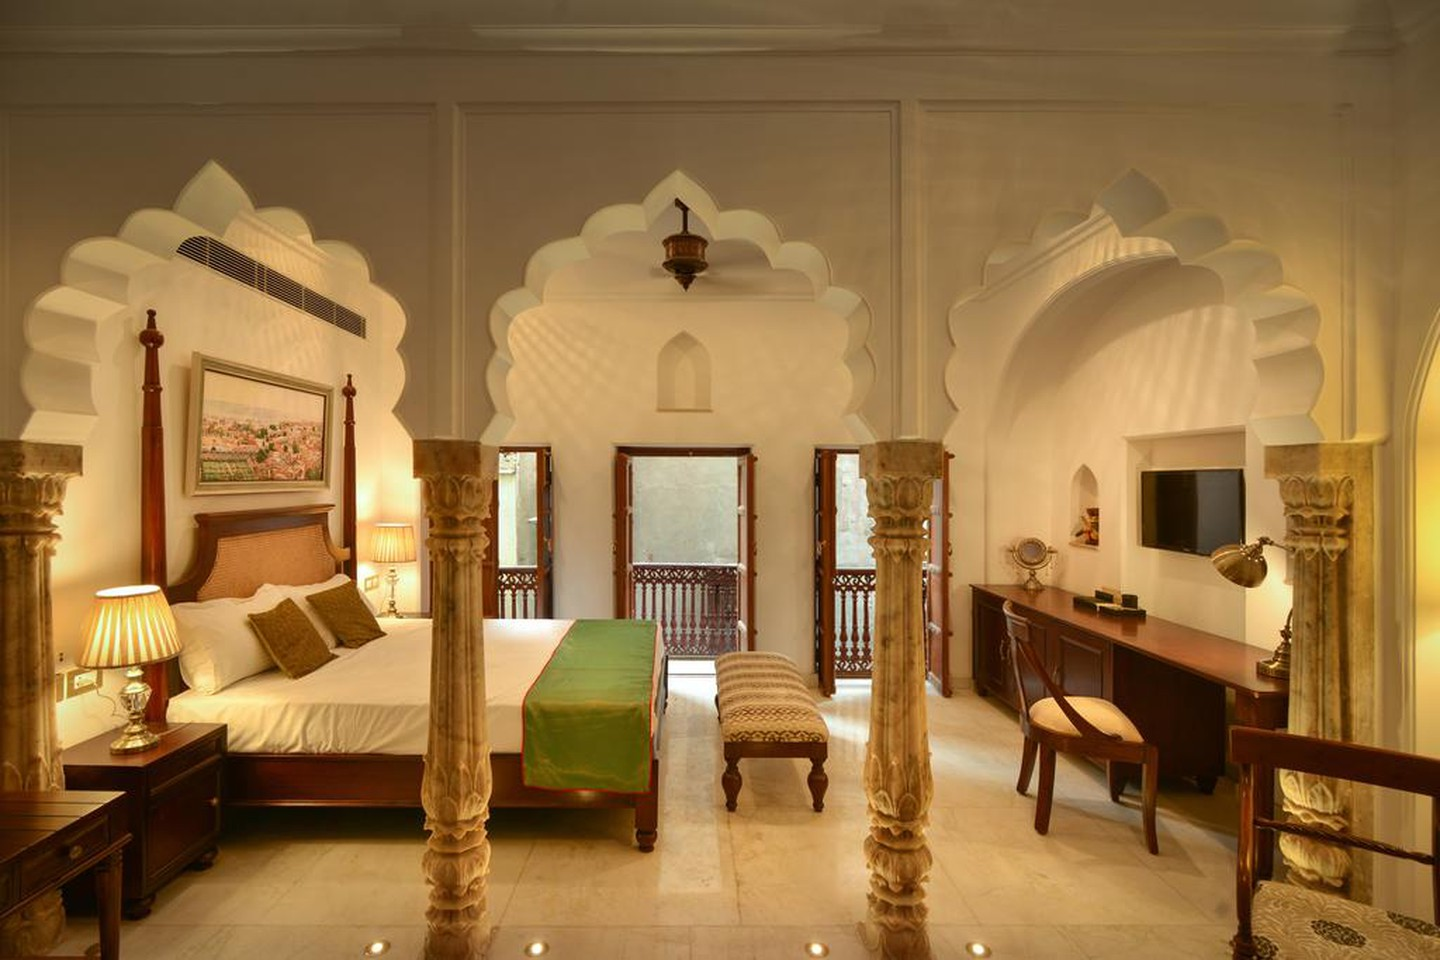 The Haveli Dharampura was awarded a prestigious UNESCO award for cultural and heritage restoration